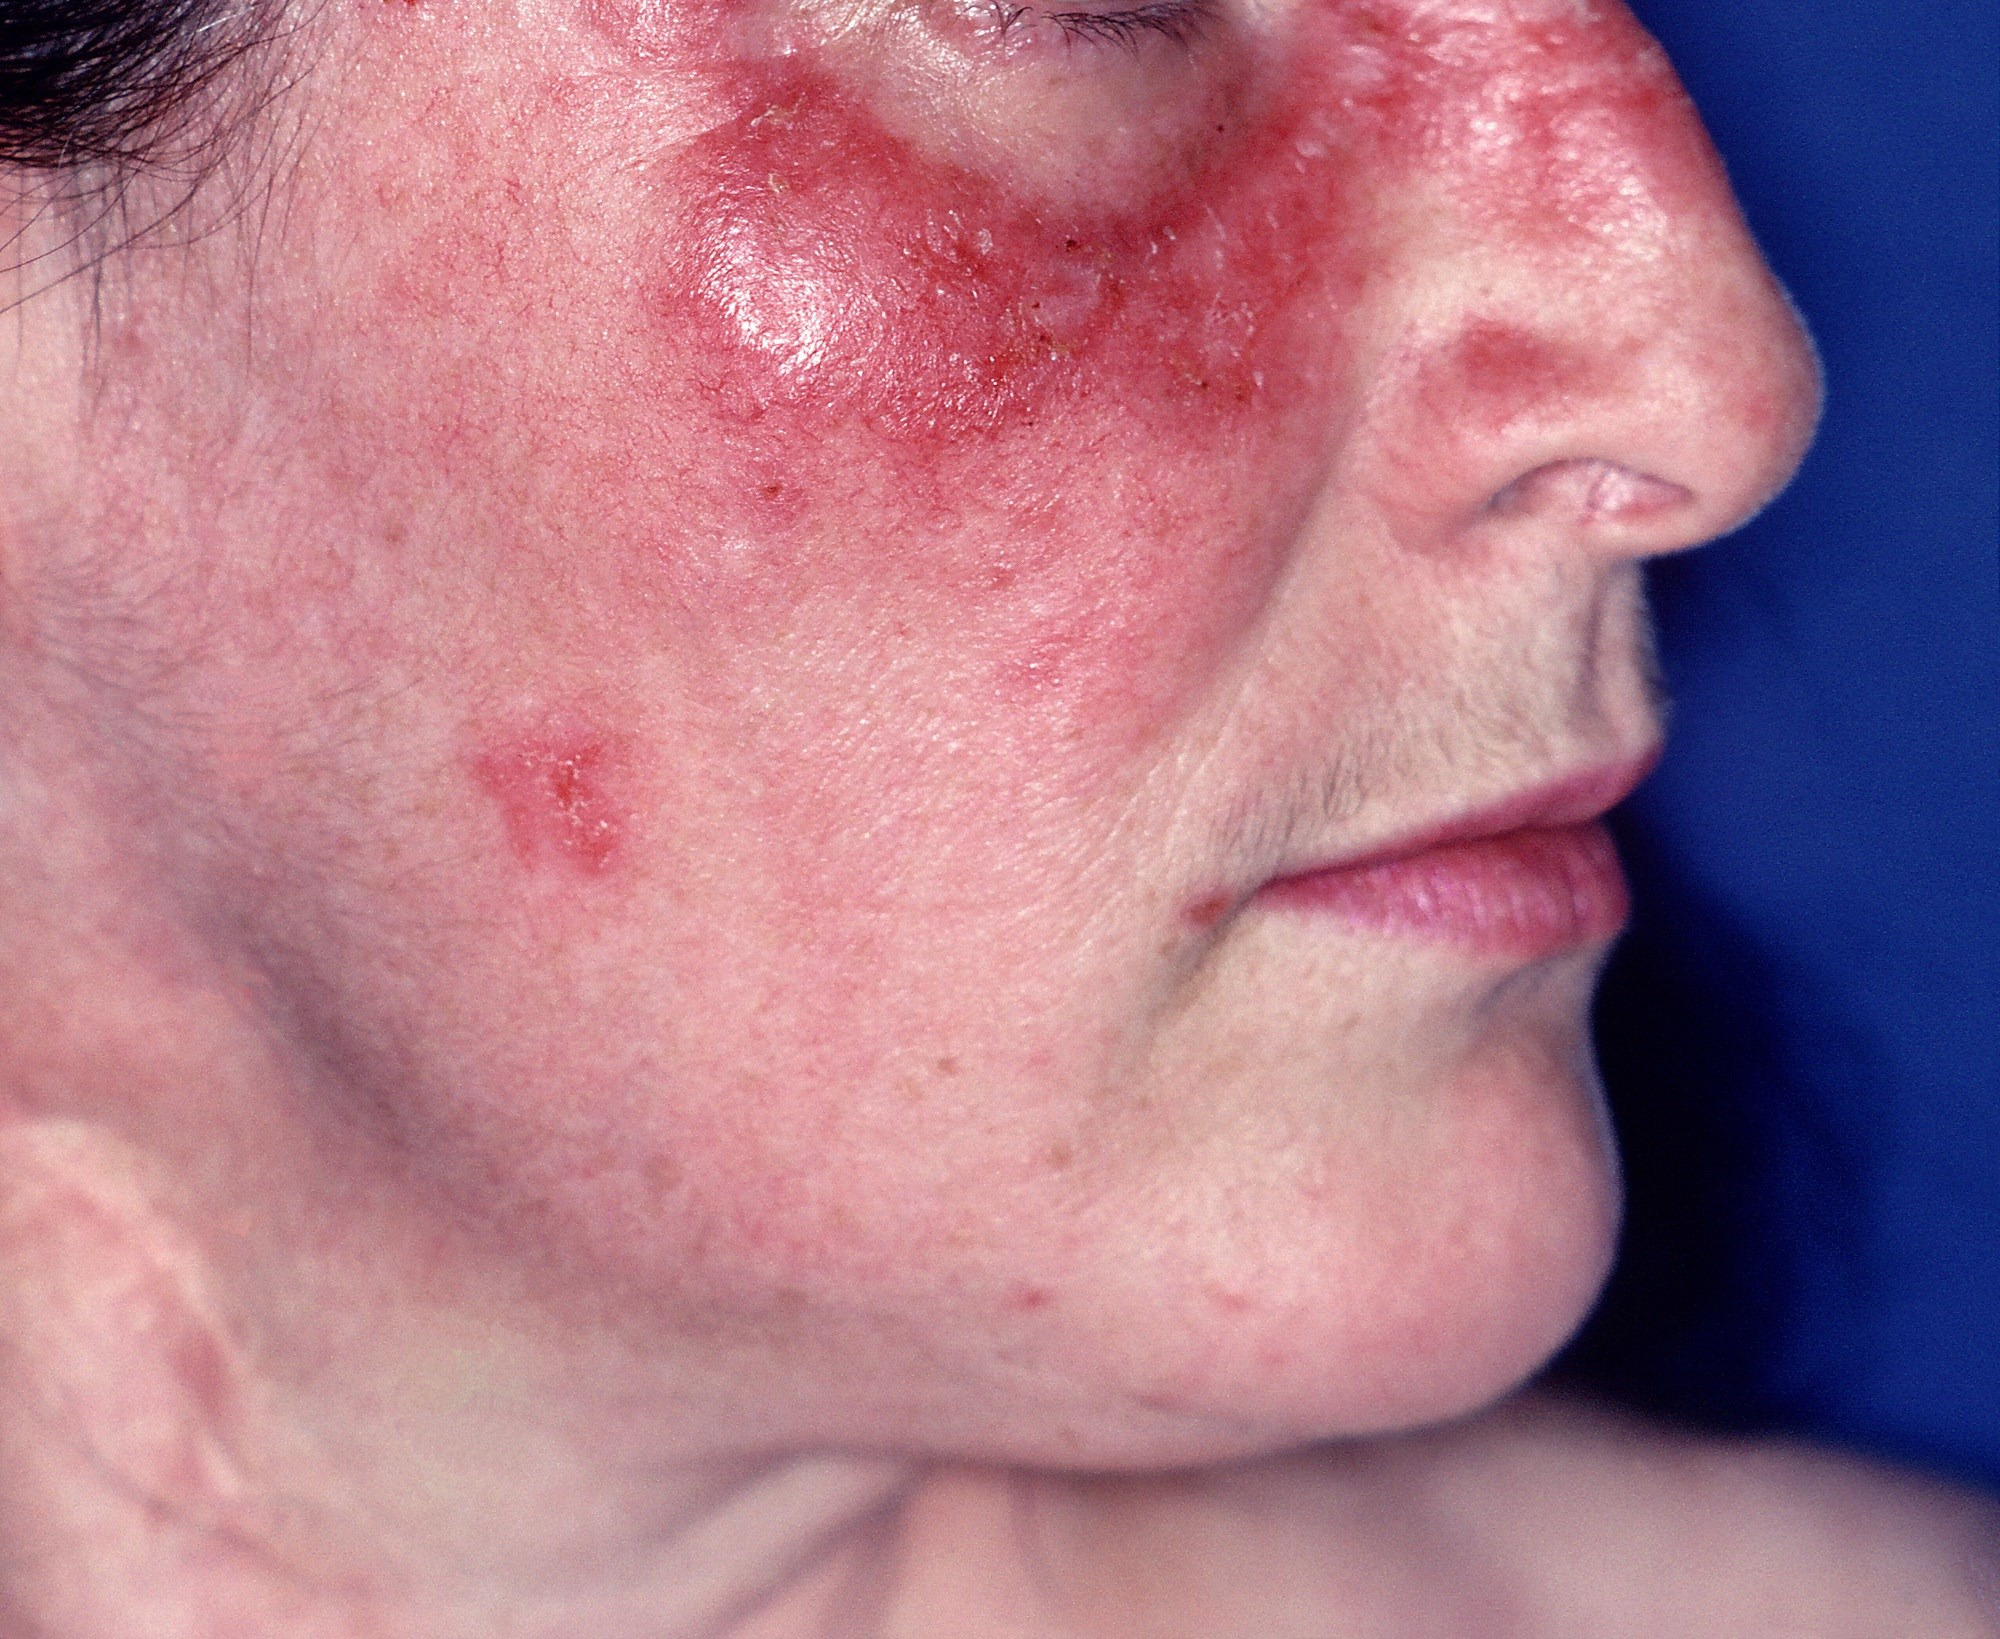 B-Cell Depletion Therapy With Rituximab Effective for Cutaneous Lupus Erythematosus